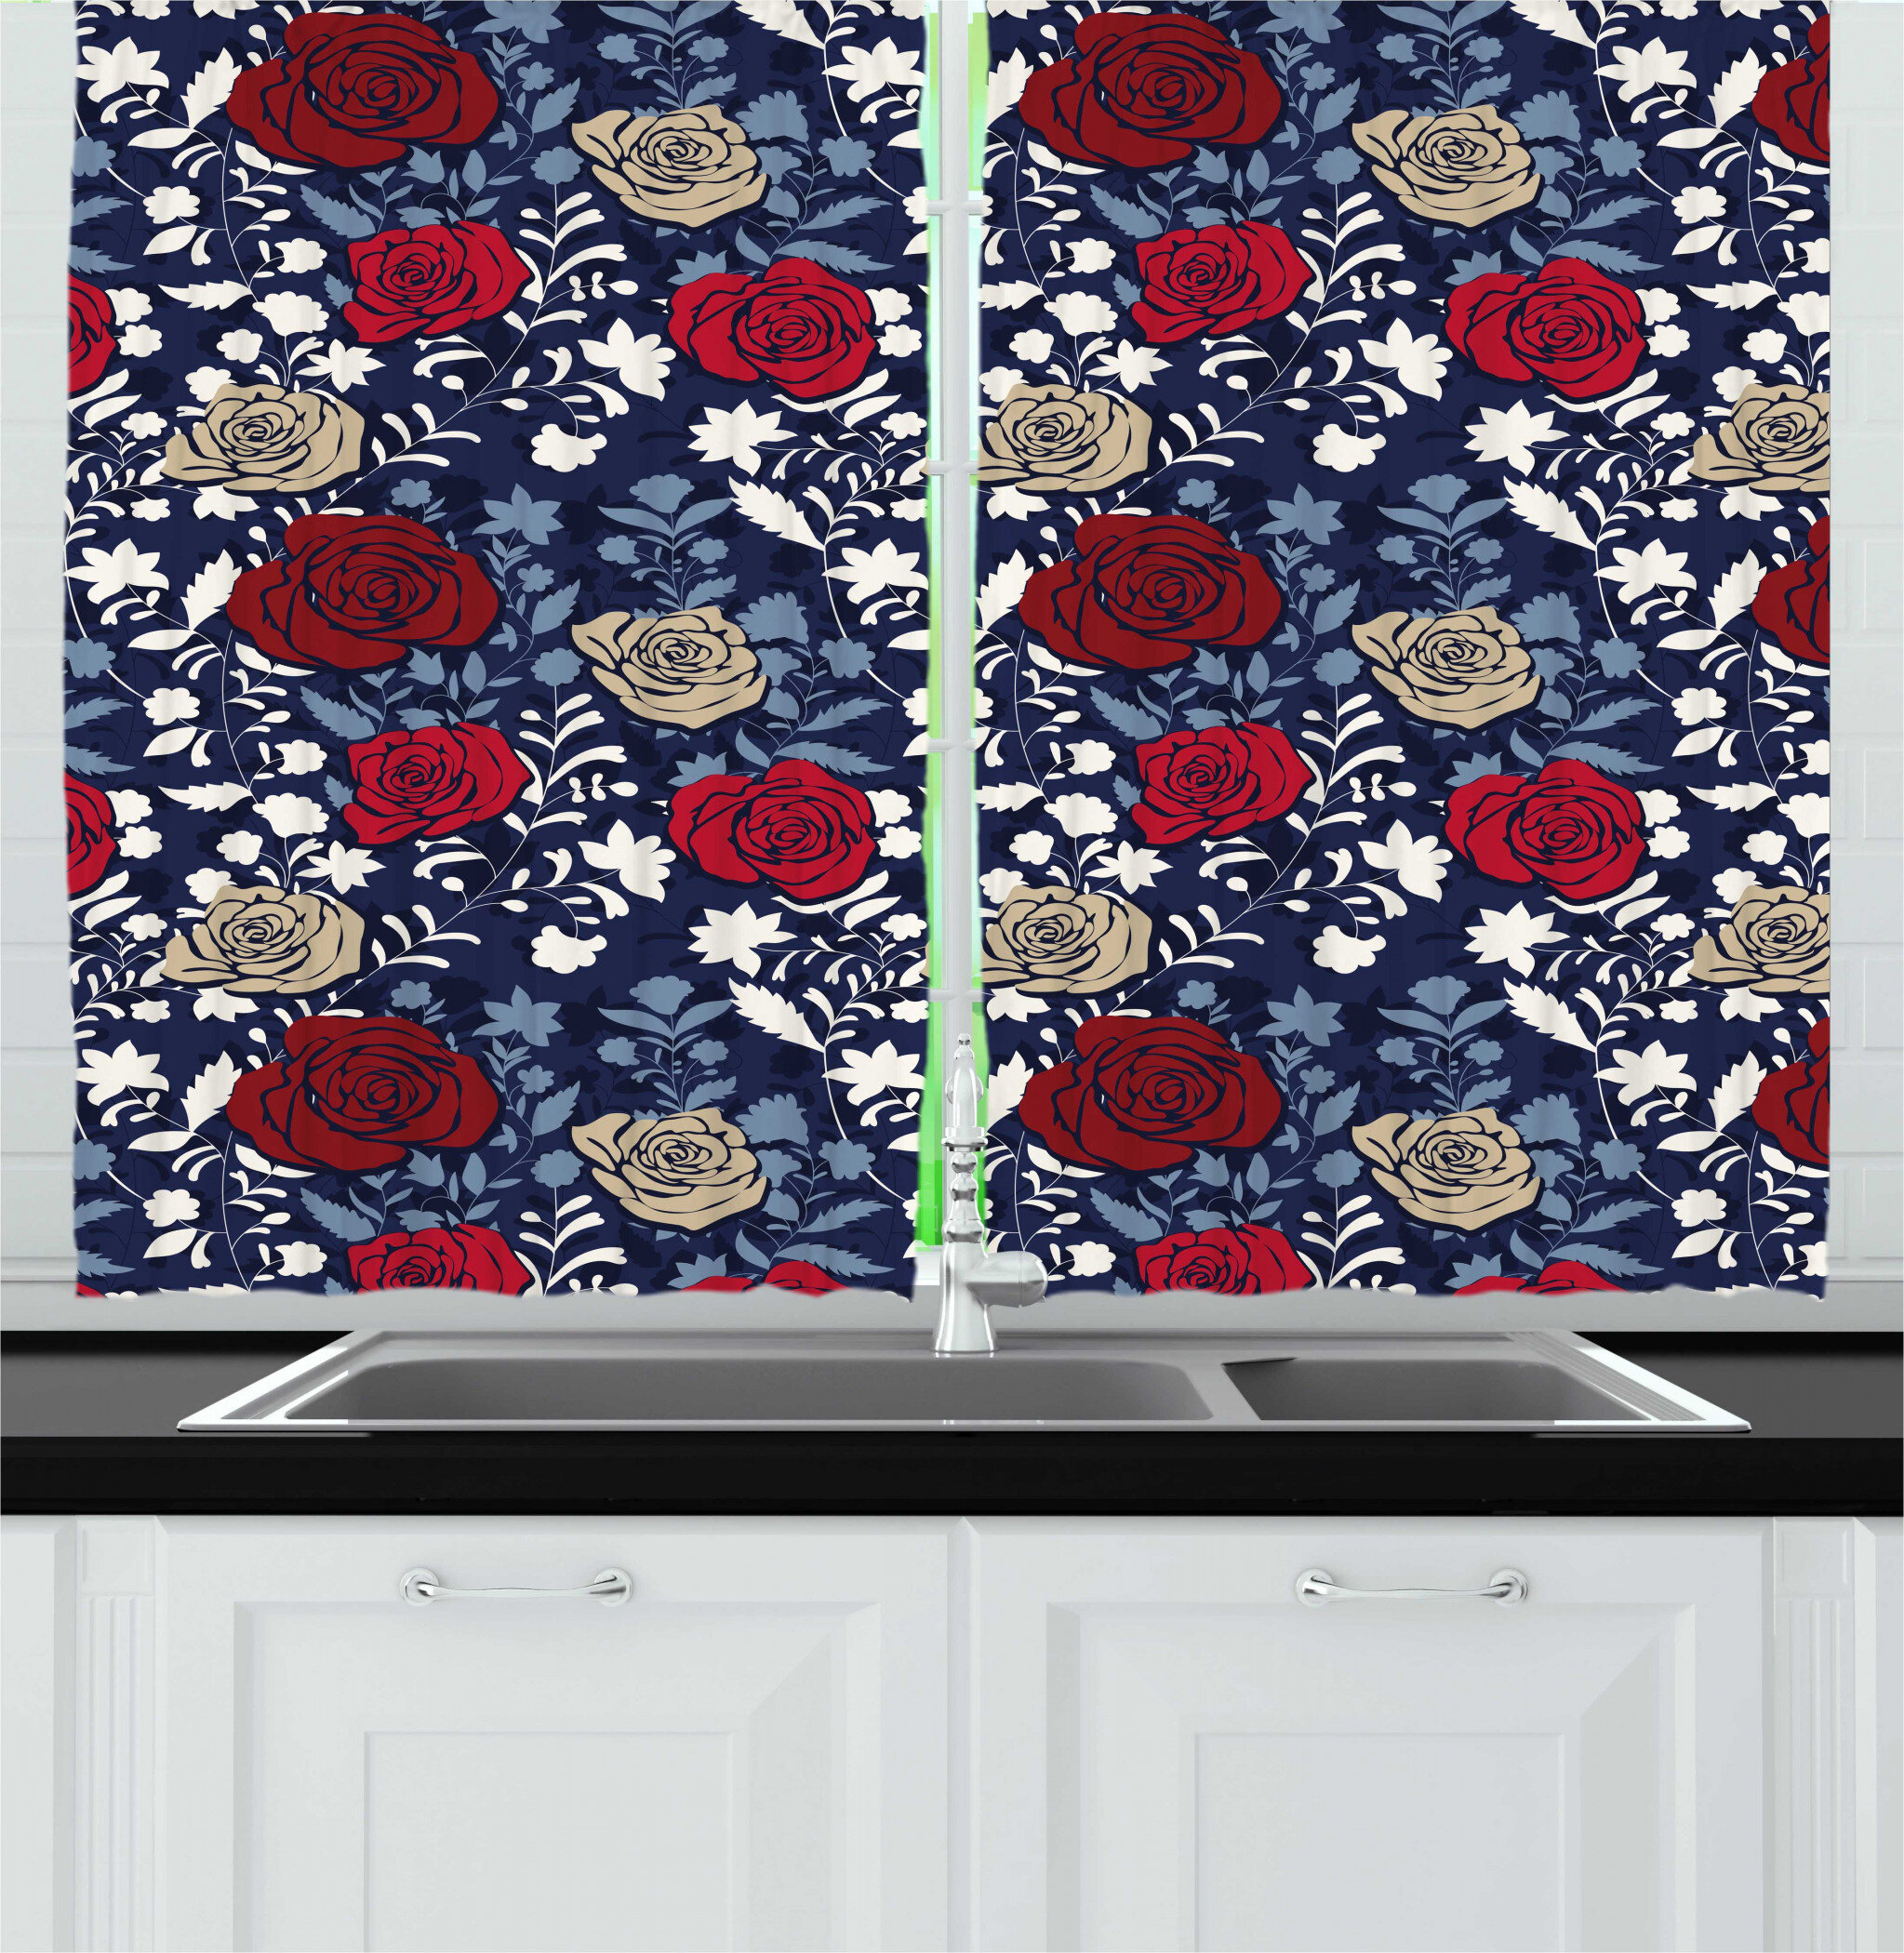 East Urban Home 2 Piece Jacobean Romantic Pattern Of Botanical Silhouettes And Blooming Roses Garden Art Kitchen Curtain Set Wayfair